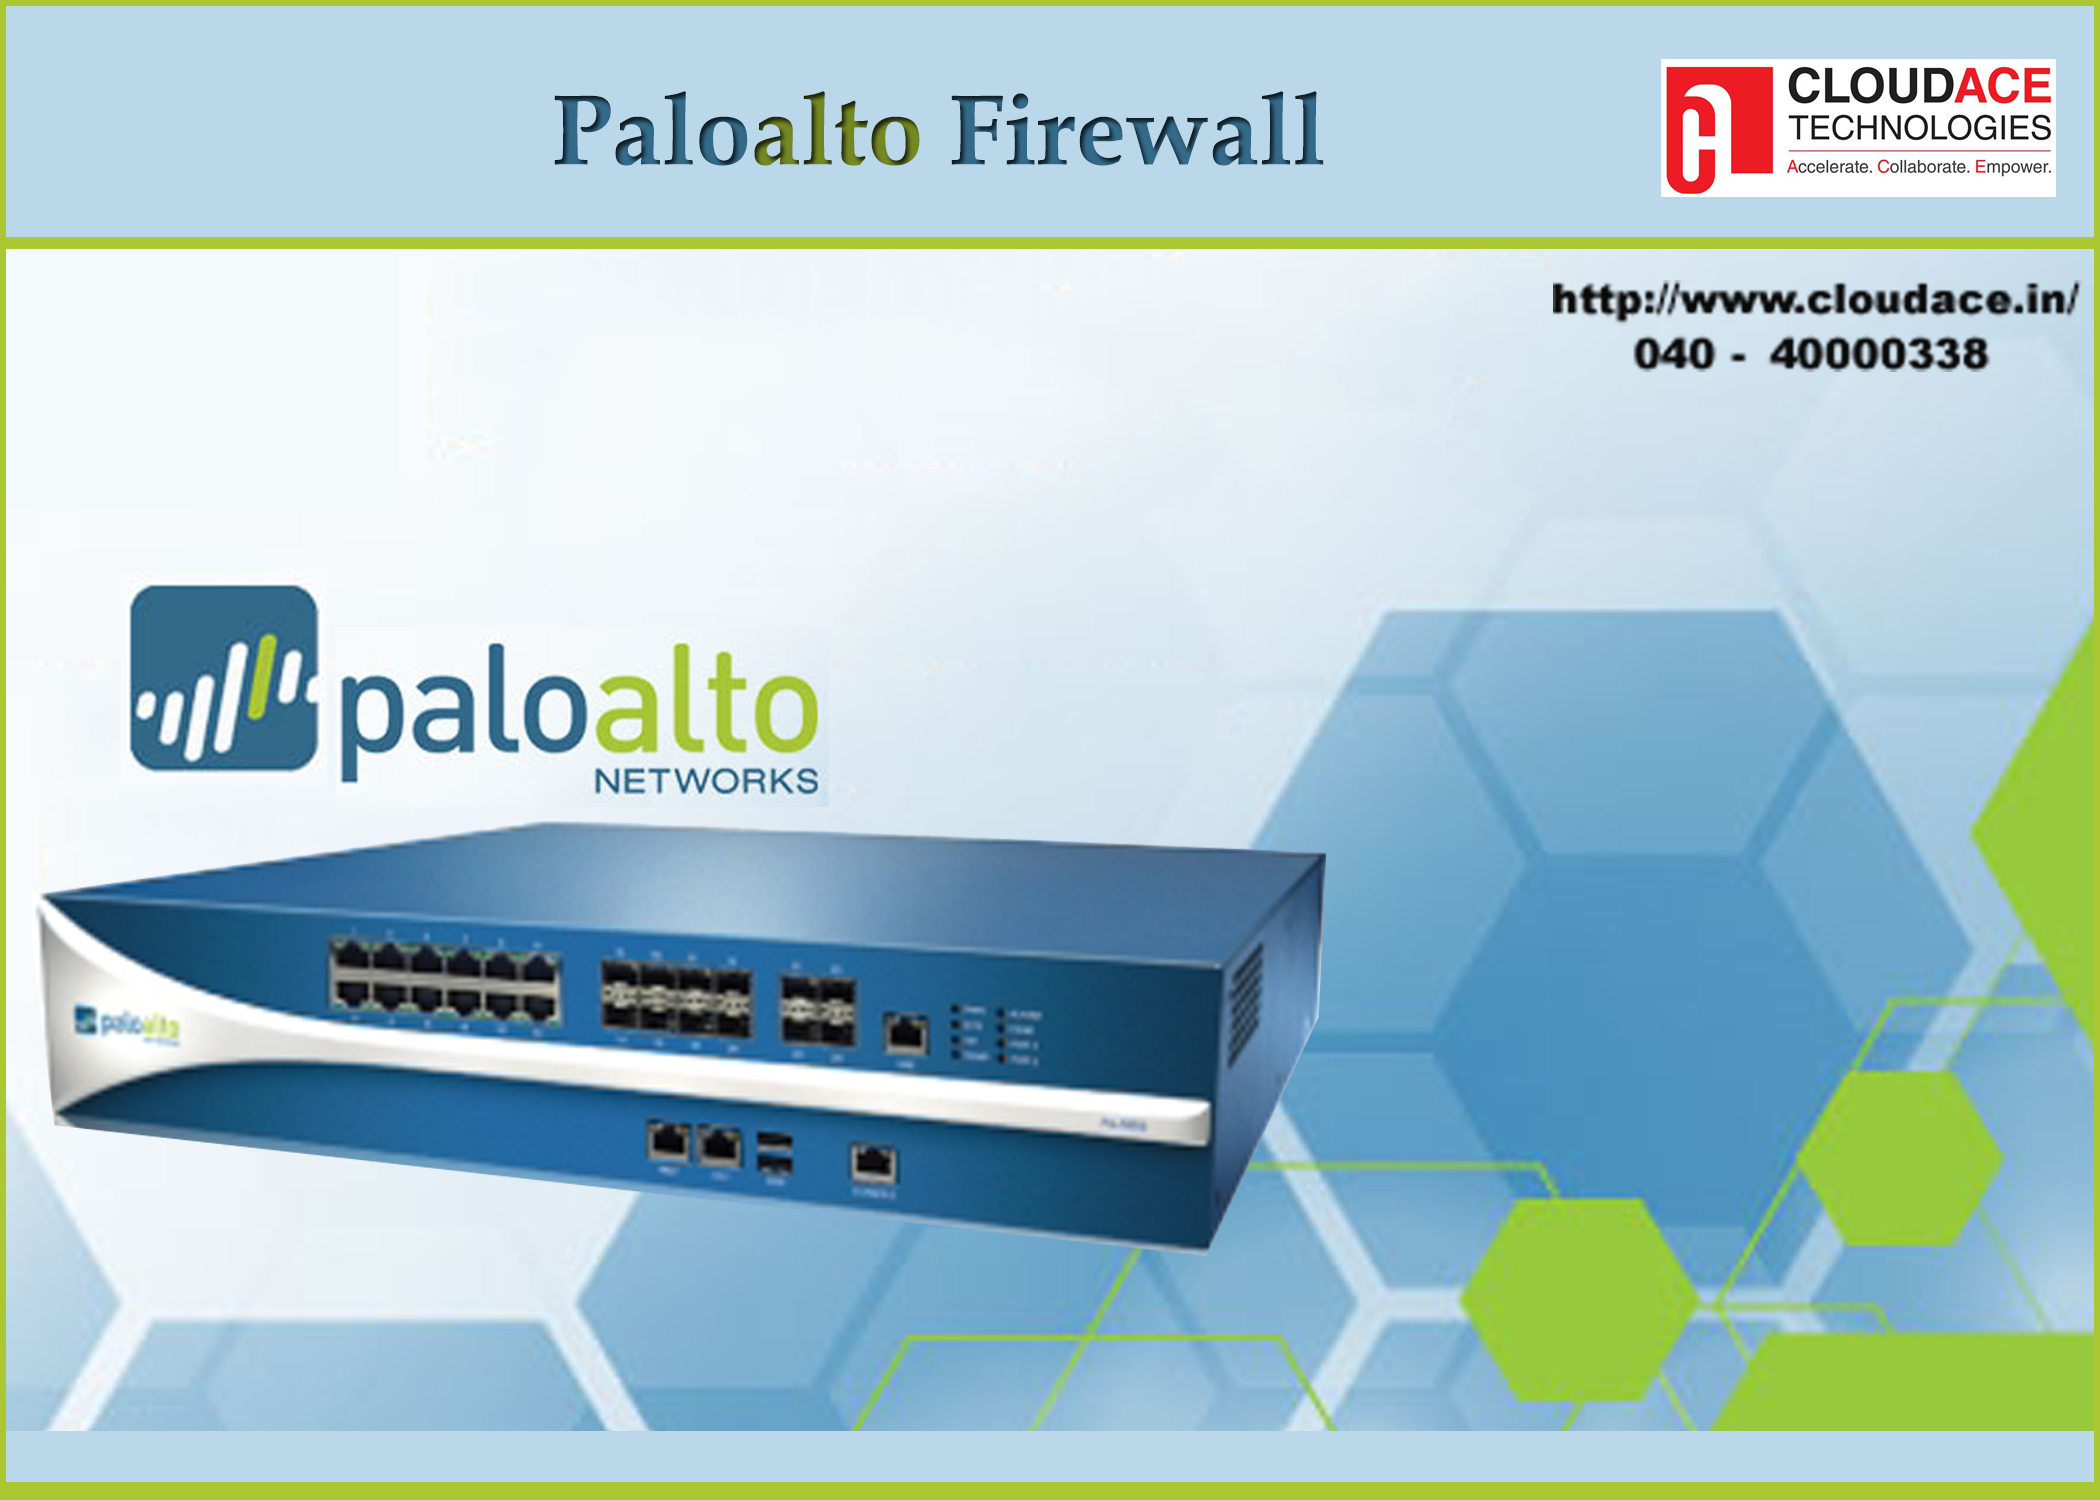 #CloudAceTechnologies is offering #Palo Alto Networks, Inc. is an #American network #Security company based in Santa Clara, #California. http://www.cloudace.in/solution/palo-alto-firewall/